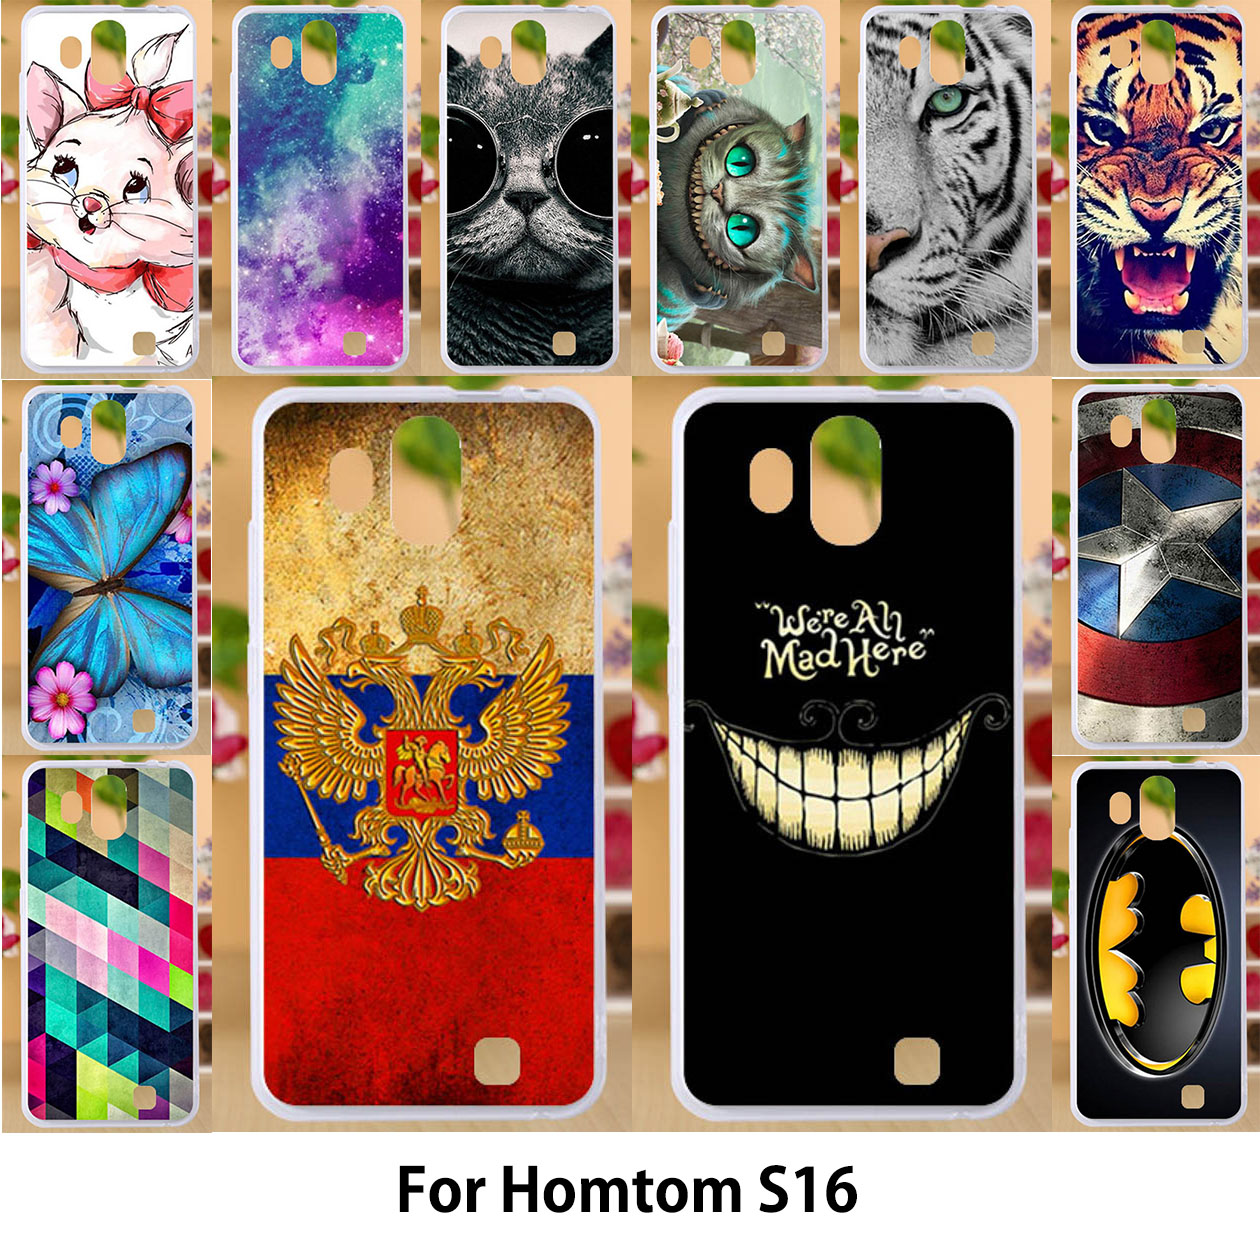 Half-wrapped Case Yinuoda Old Musical Note Novelty Fundas Phone Case Cover For Apple Iphone 8 7 6 6s Plus X Xs Max 5 5s Se Xr Cover High Quality And Low Overhead